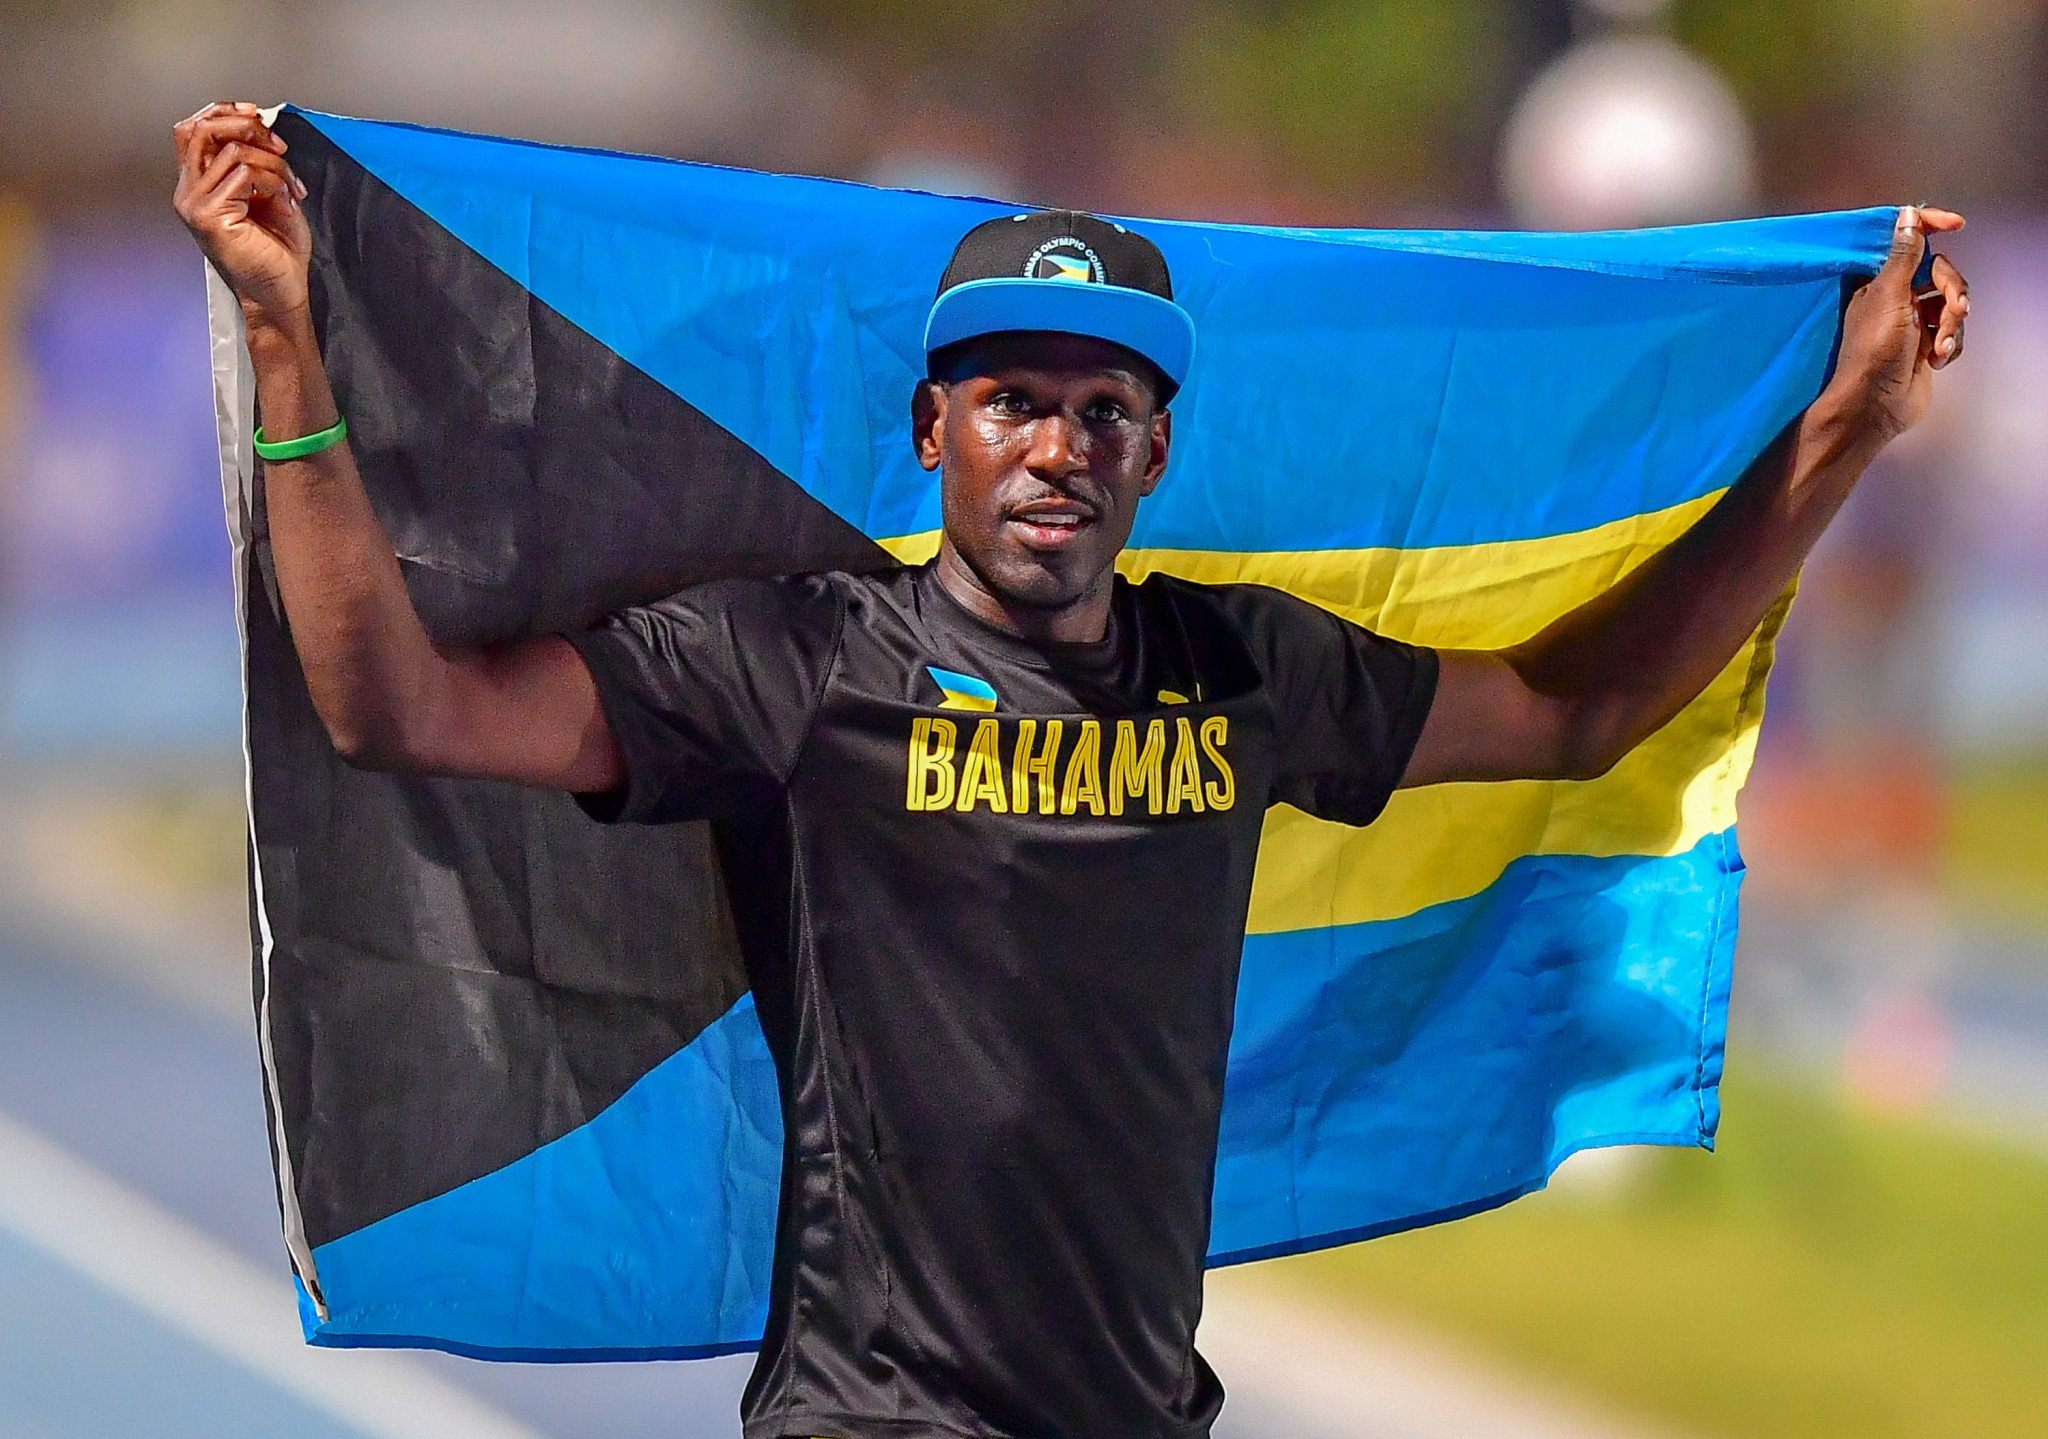 Donald Thomas of the Bahamas is considered a favourite for the men's contest in Banská Bystrica ©Getty Images